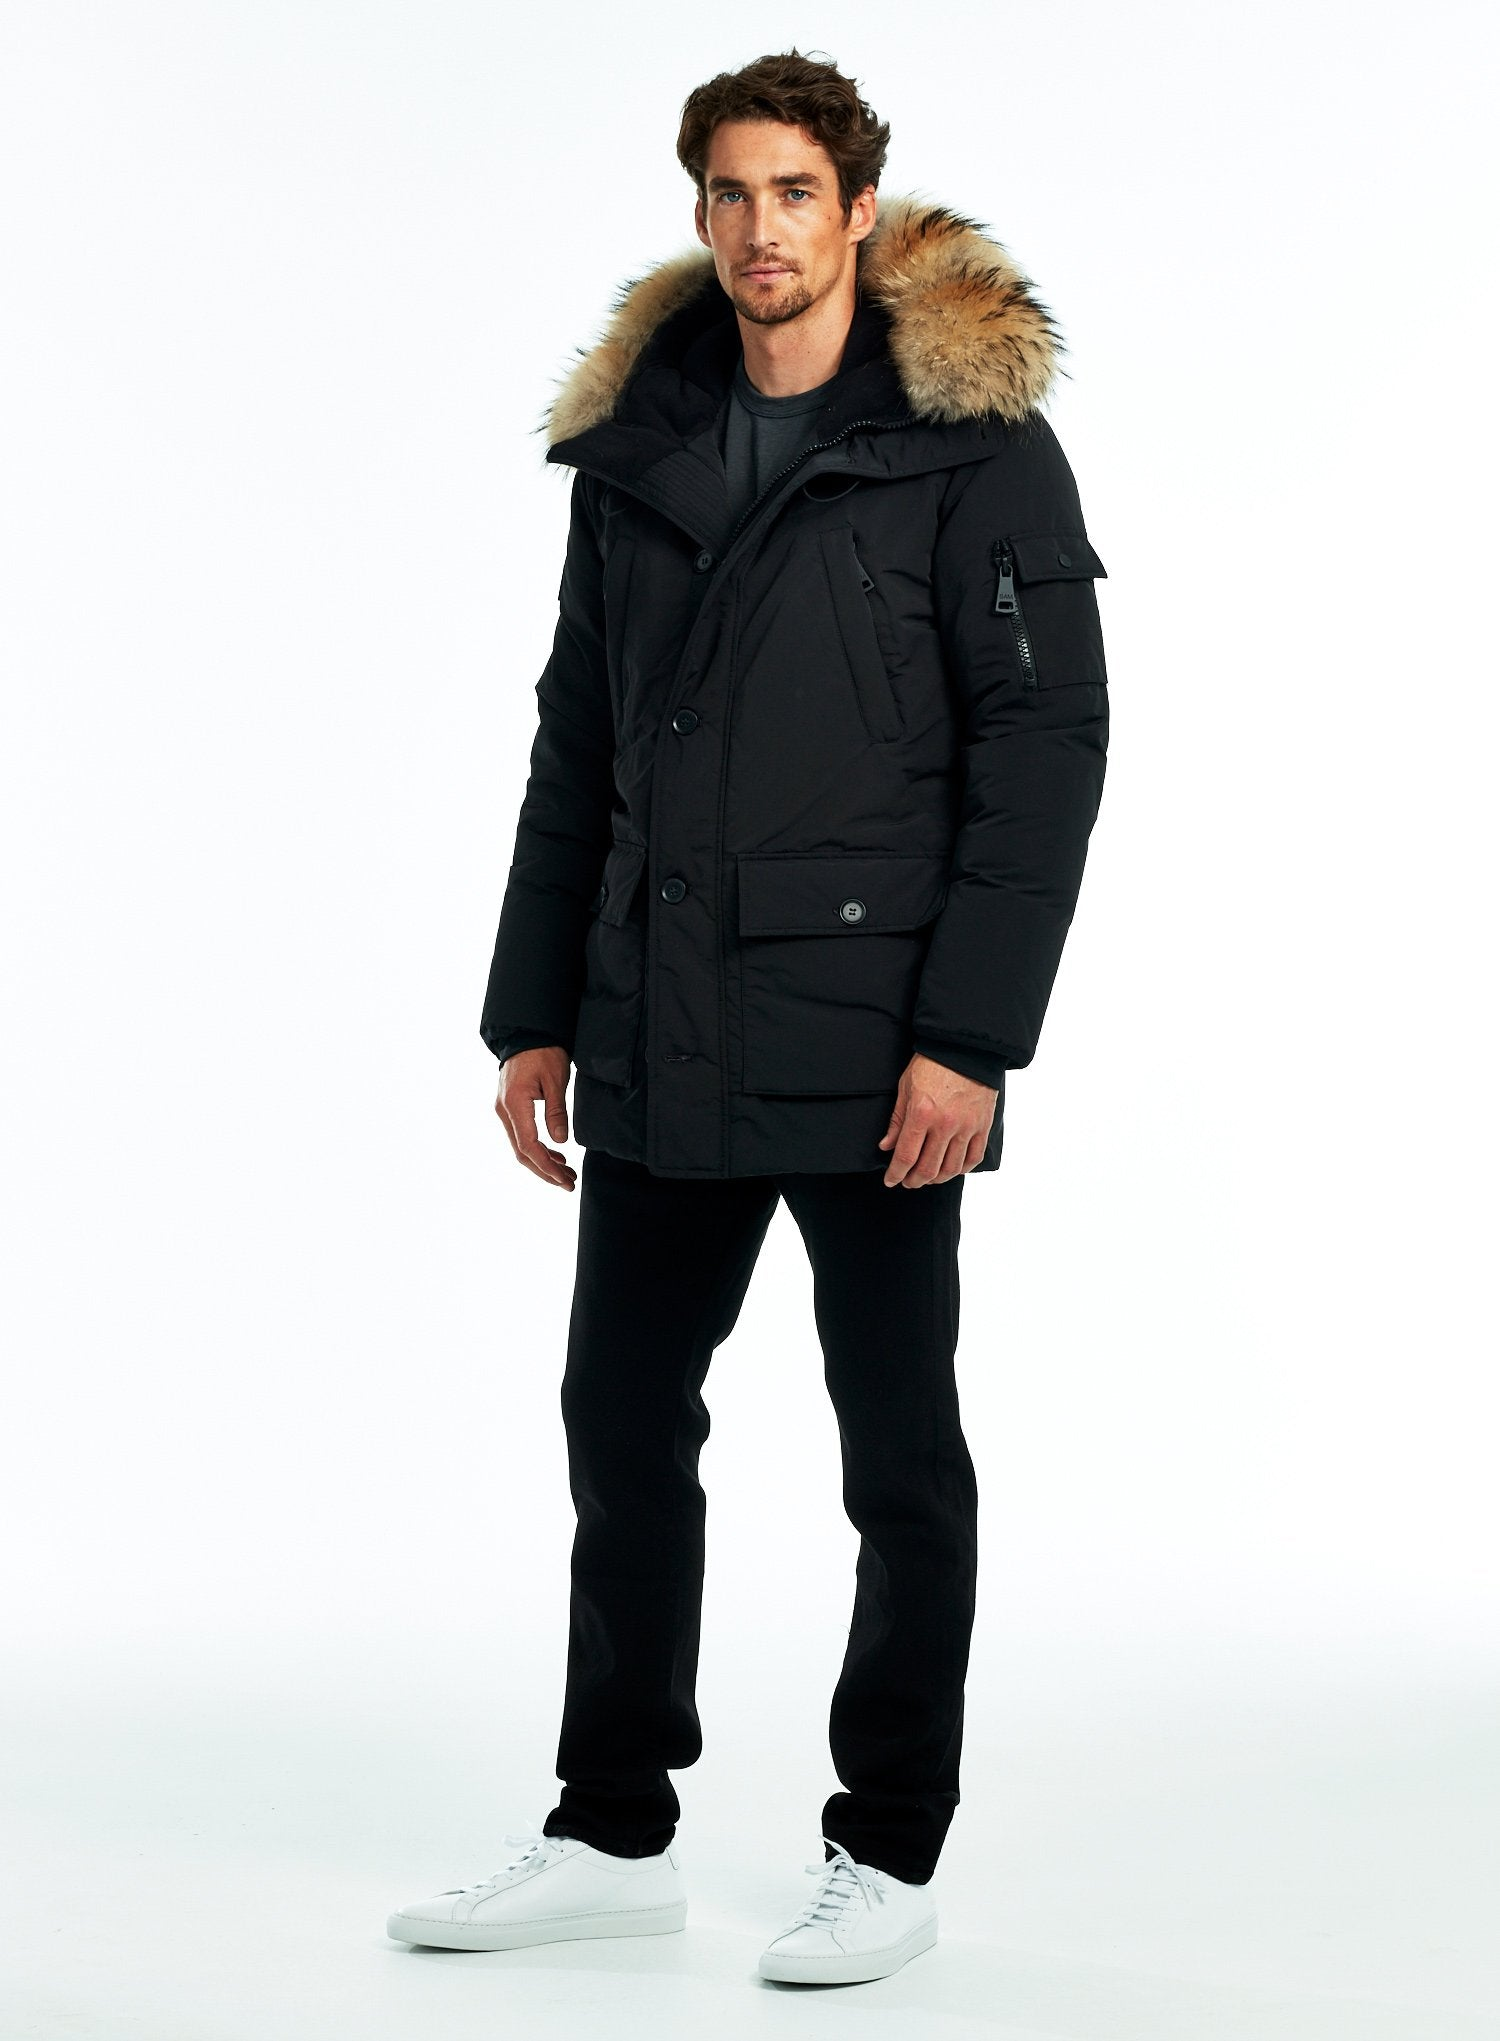 EXPEDITION EXPEDITION - SAM. New York Sam nyc jacket